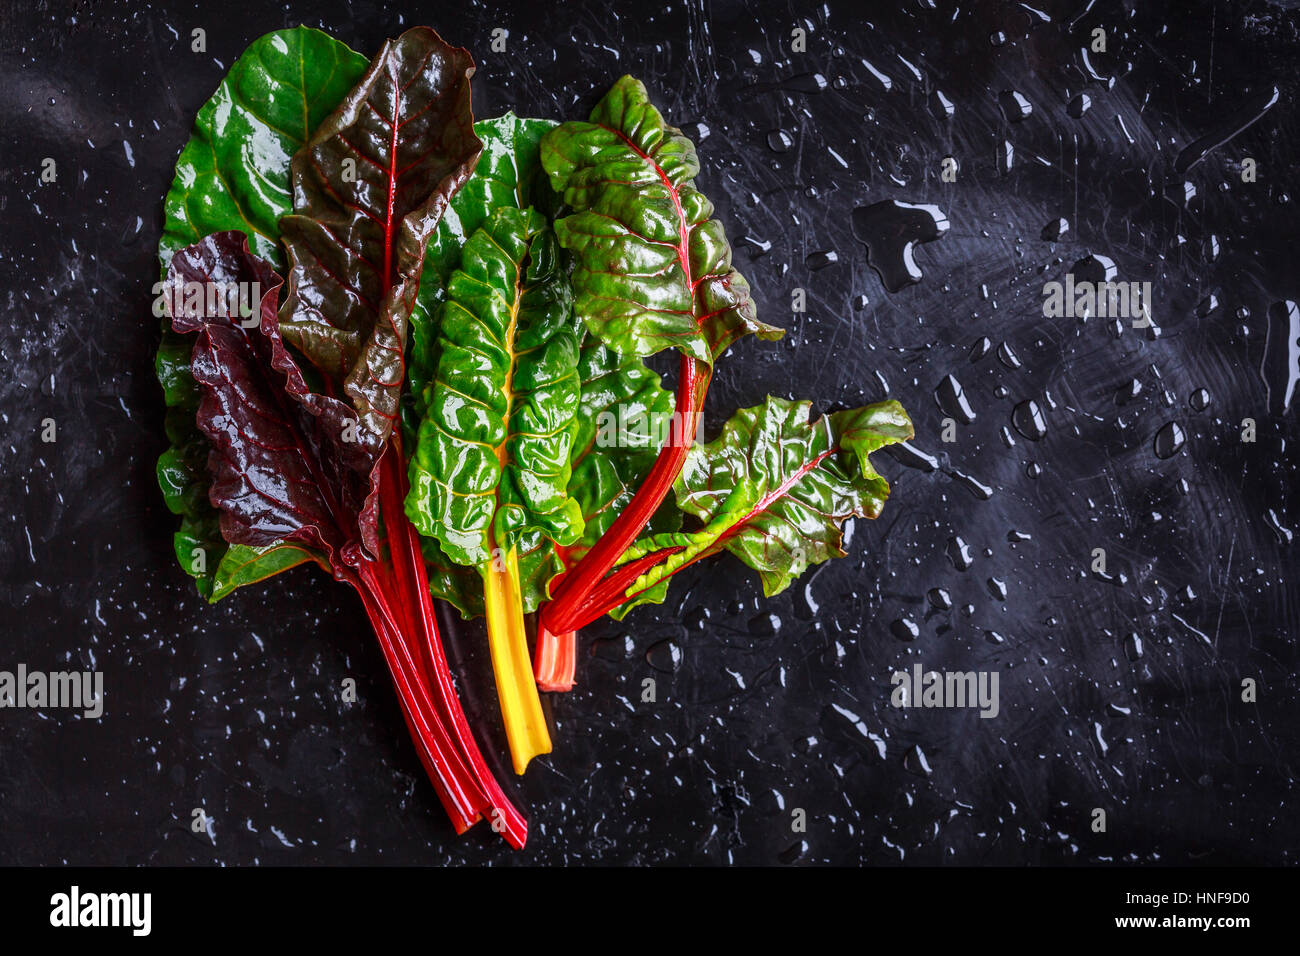 Assorted varieties of chard - Stock Image